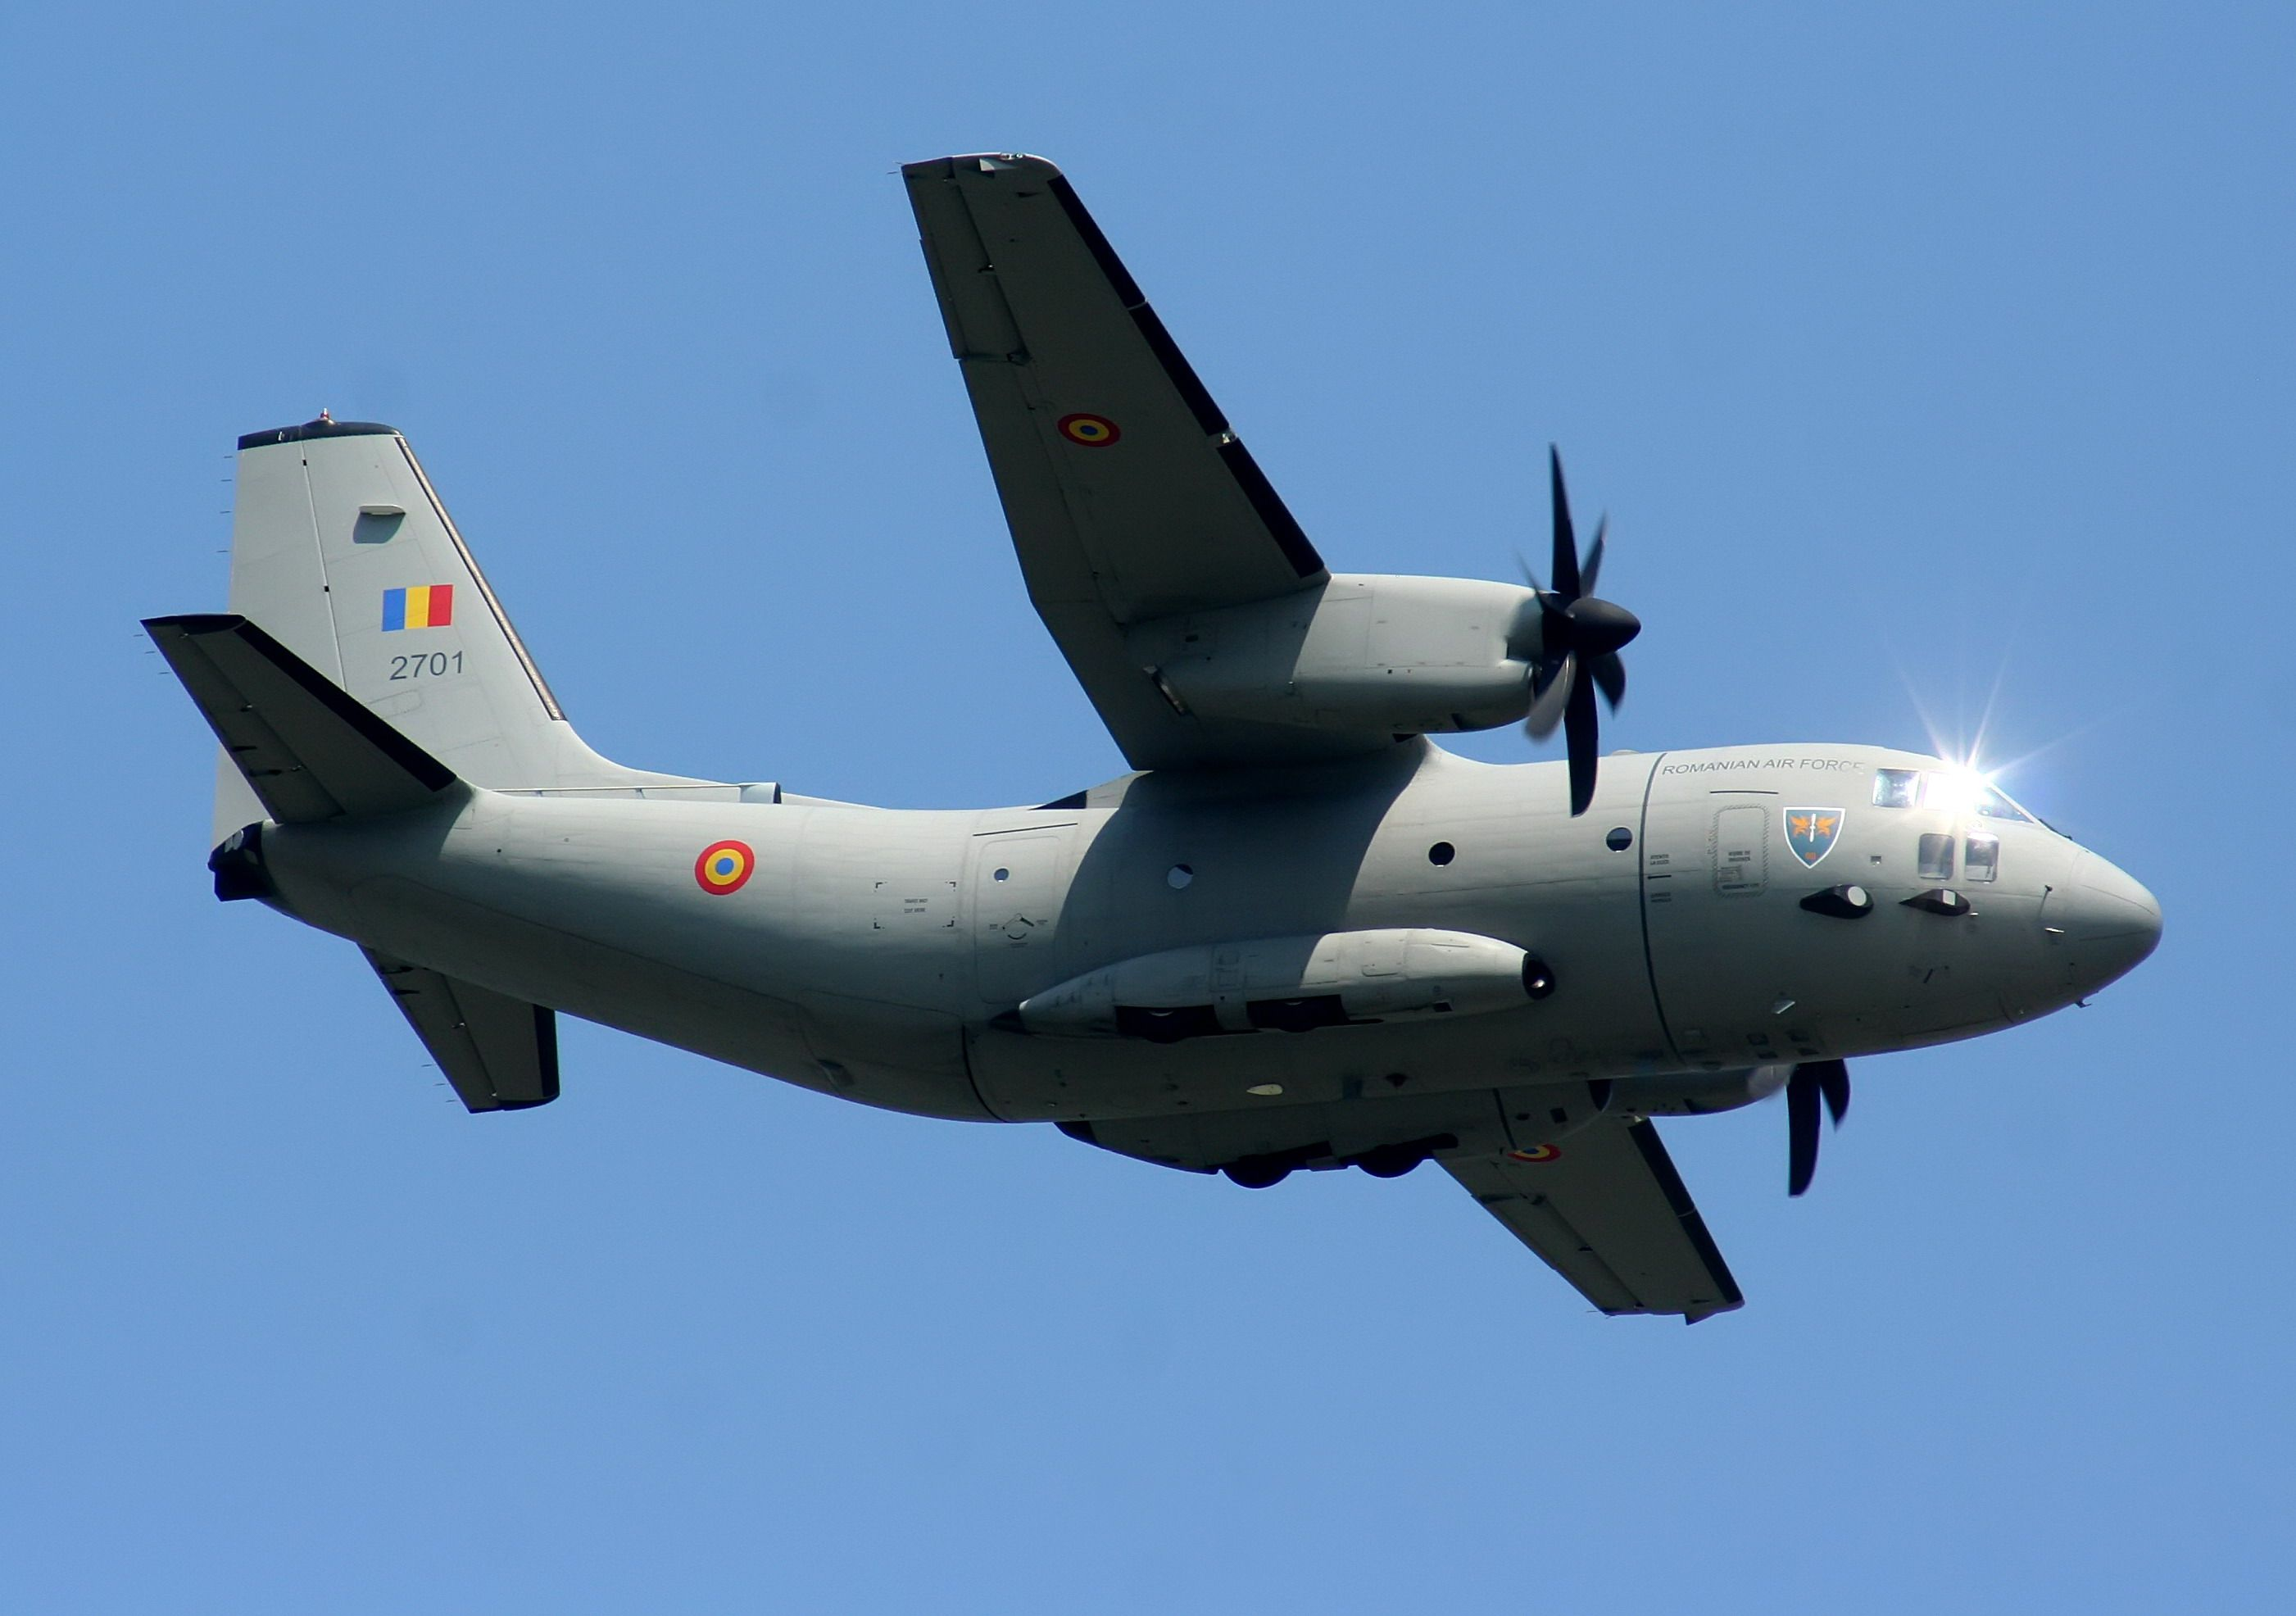 Http Www Twfonline Ch Military Aircraft Armed Forces Romania Travel